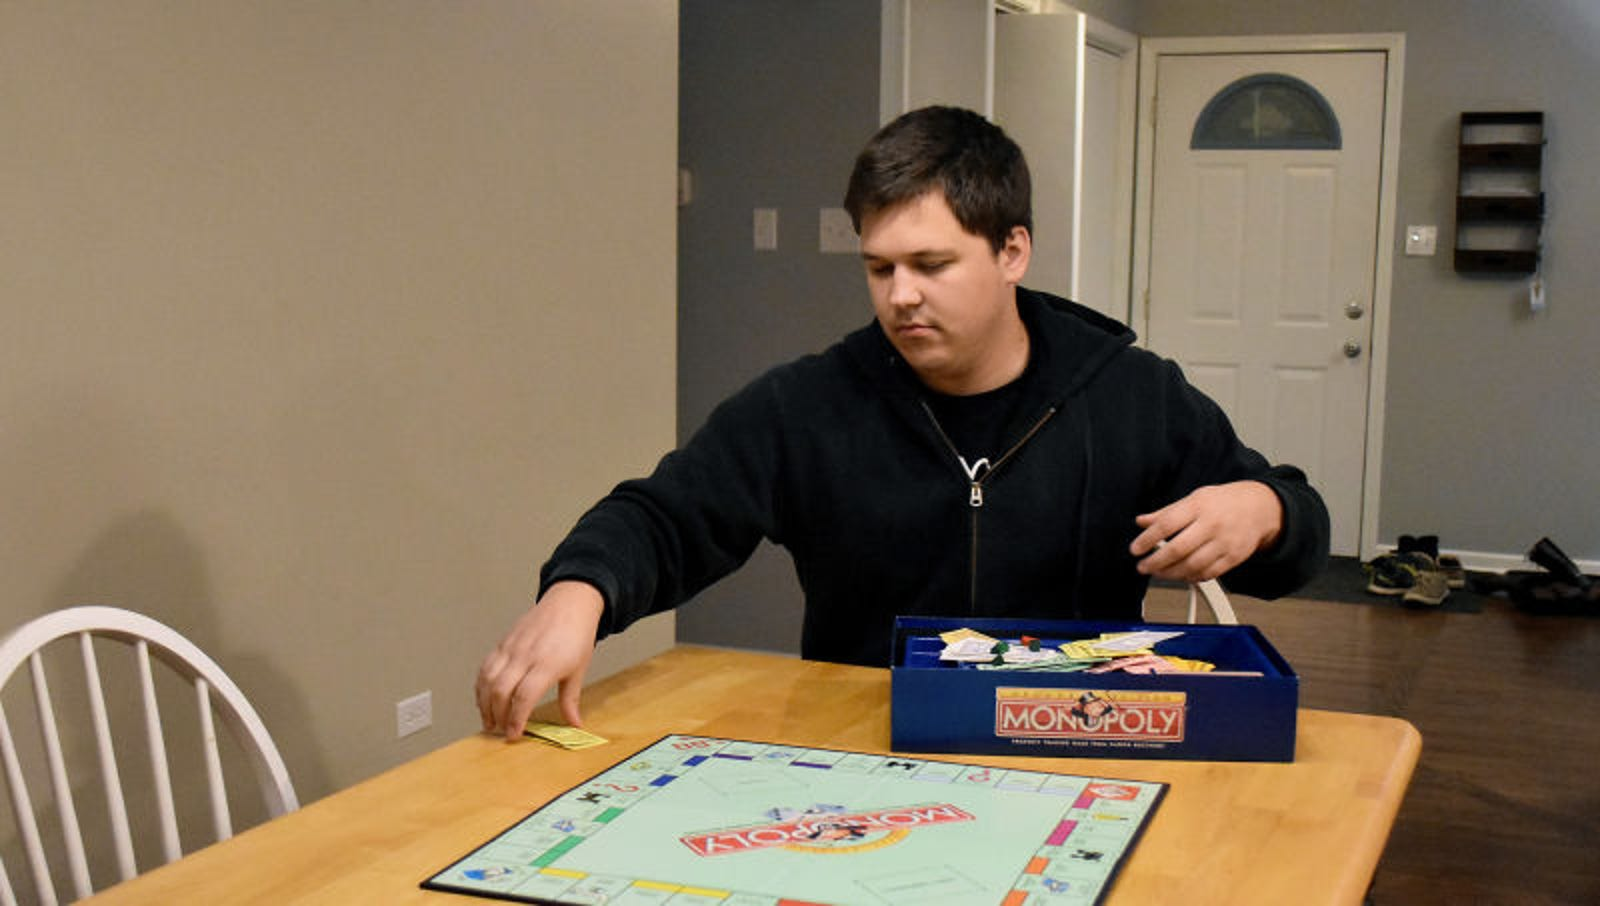 Negligent Oaf Sloppily Packs Away Board Game Without So Much As A Thought To Future Players